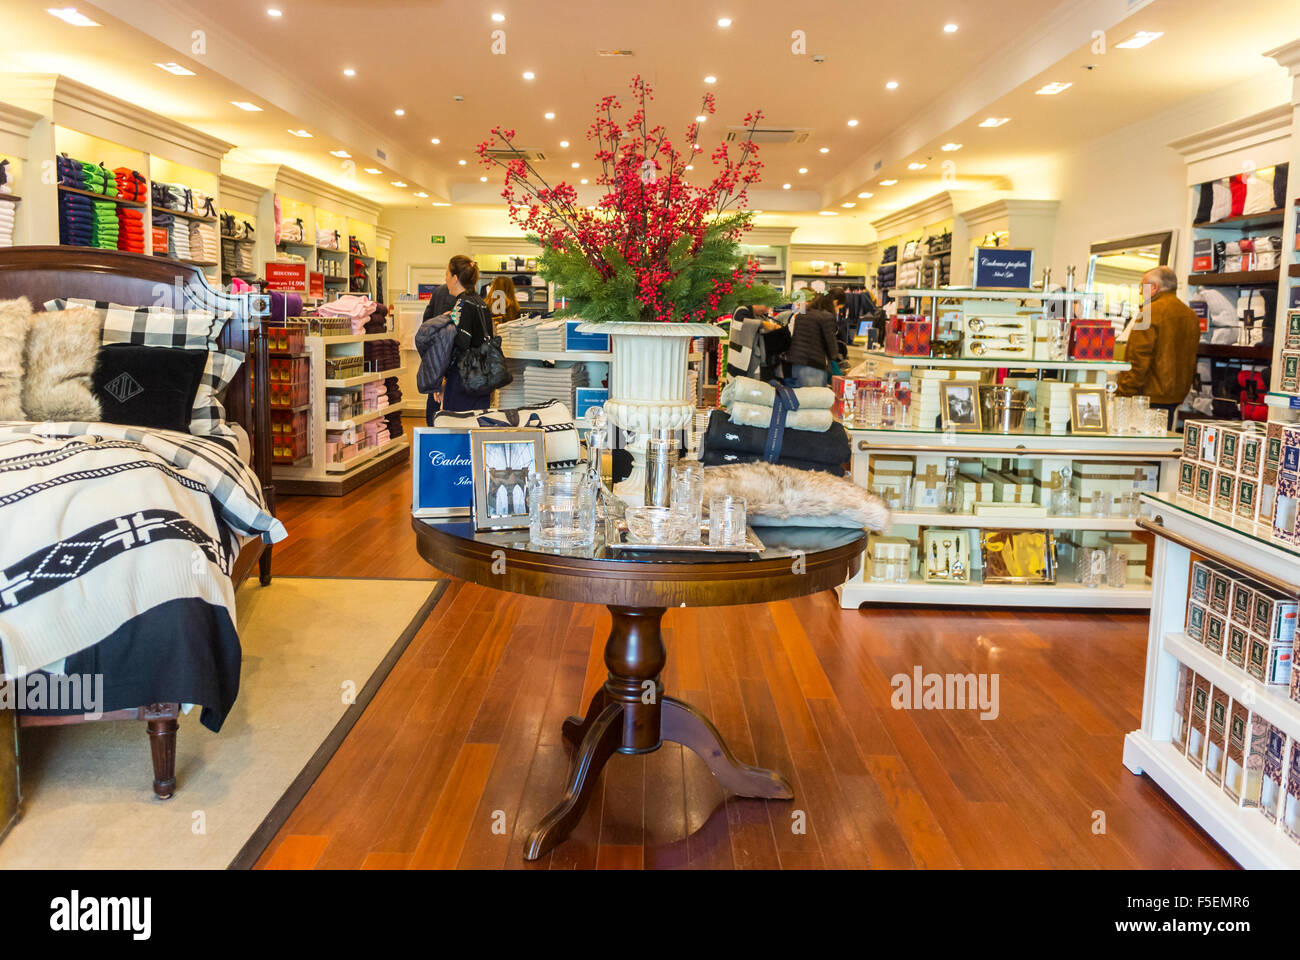 La Vallée Village Mall Photos   La Vallée Village Mall Images - Alamy 38b3333936d